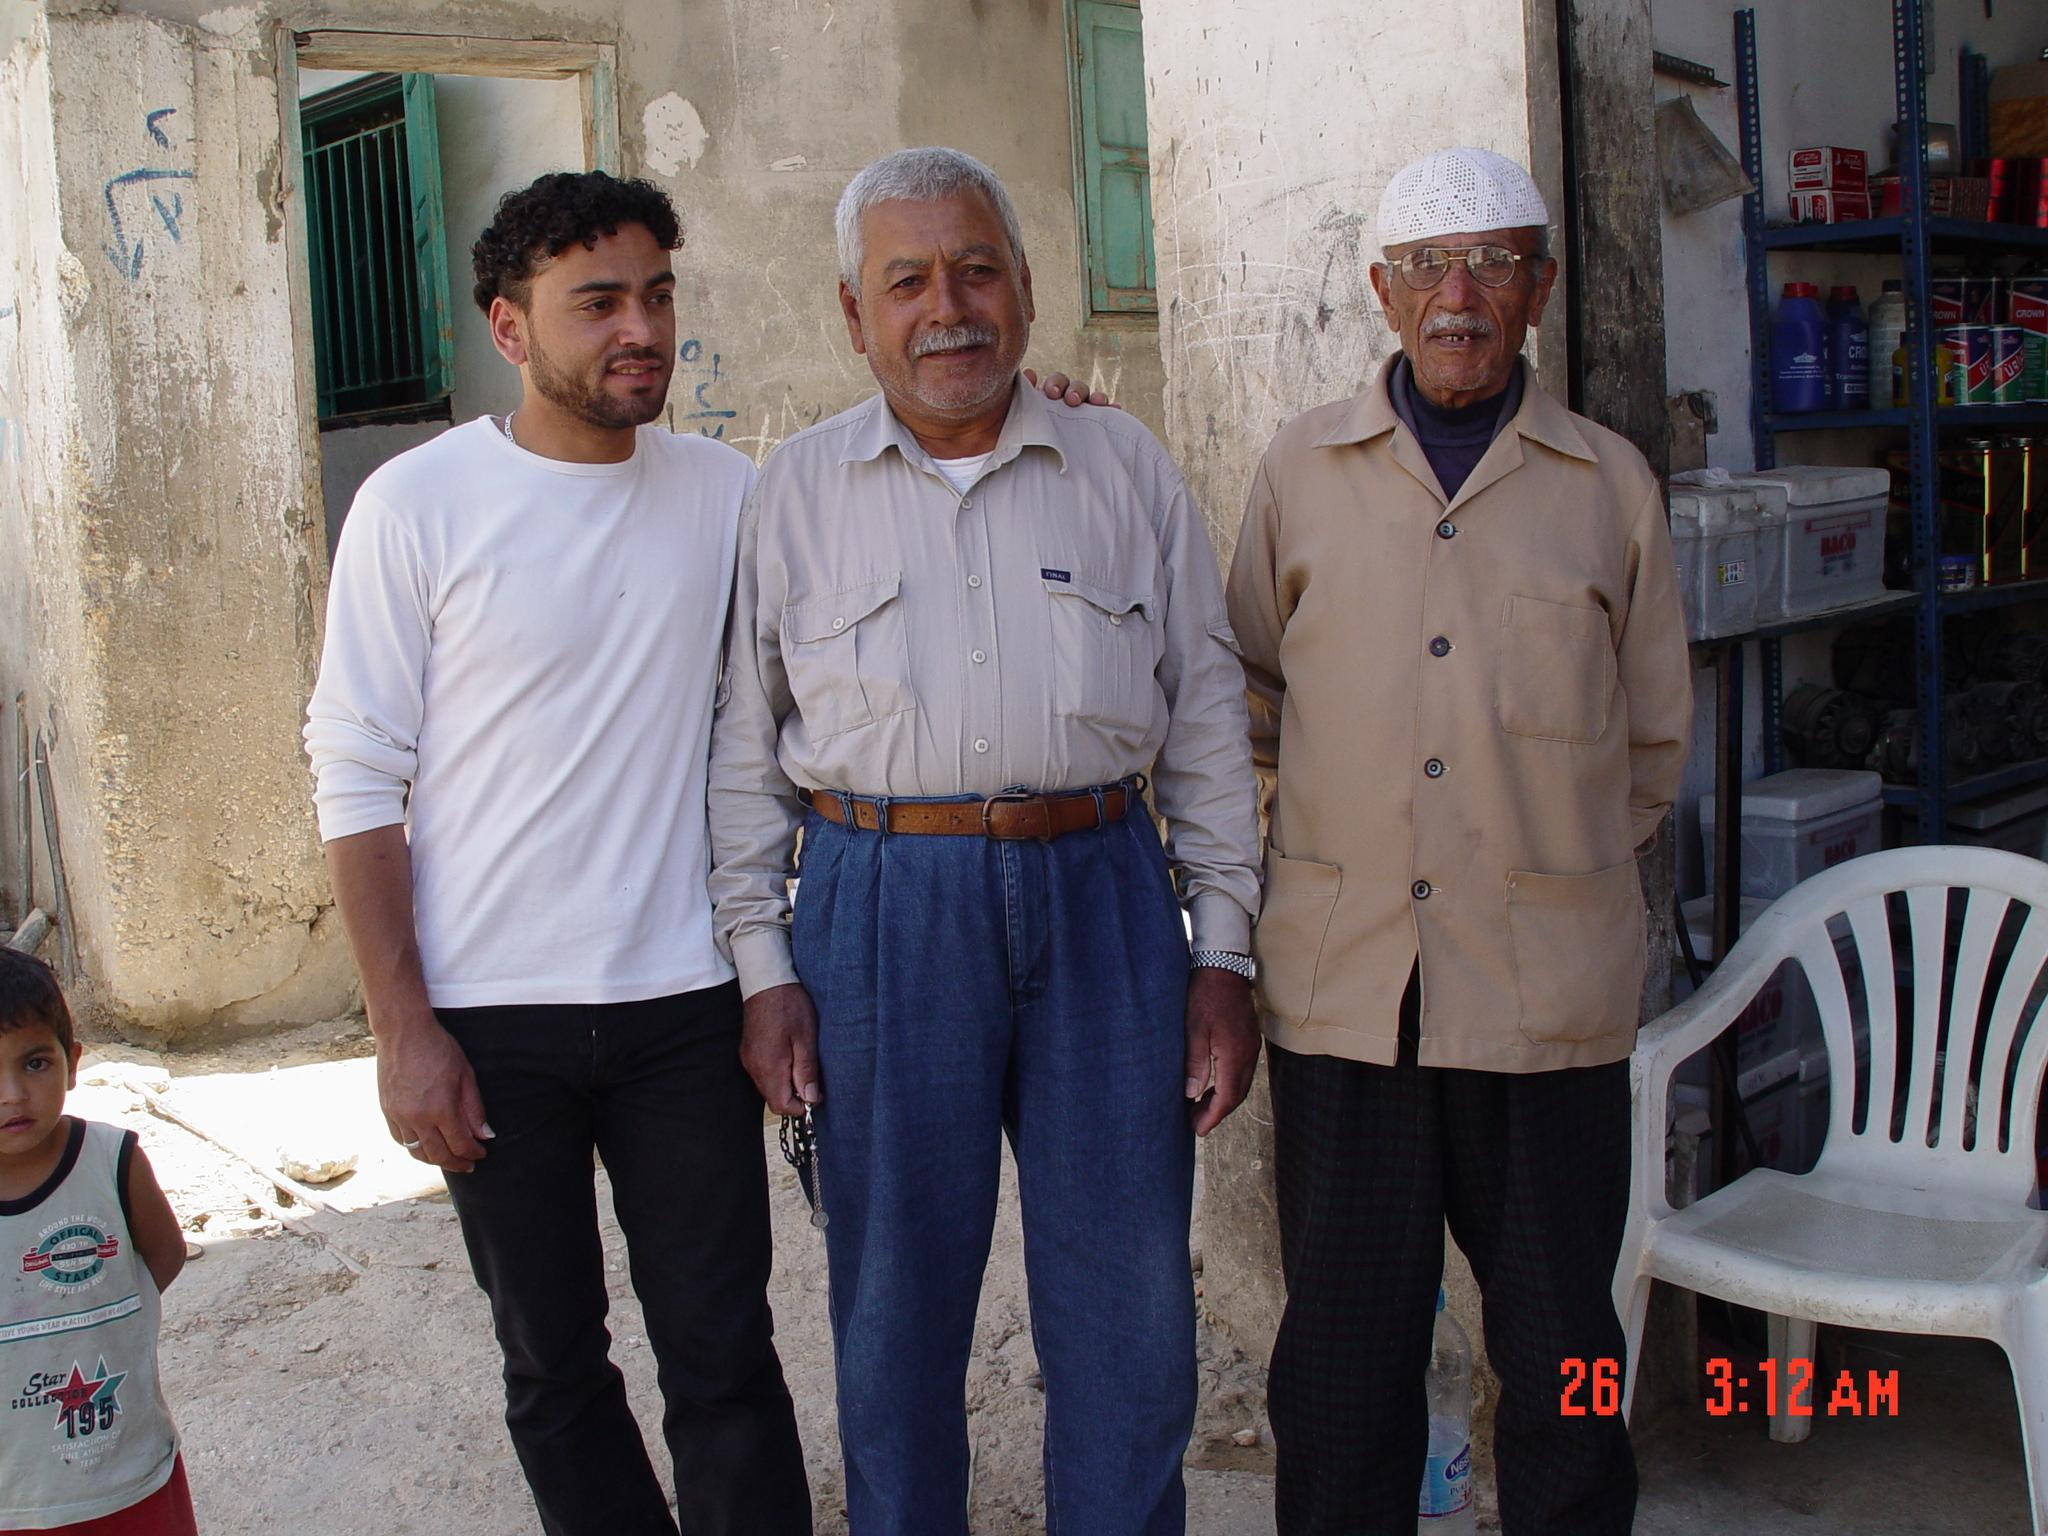 al-Burj al-Shamali R.C.&nbsp;-&nbsp;&#1605;&#1582;&#1610;&#1617;&#1605; &#1576;&#1585;&#1580; &#1575;&#1604;&#1588;&#1605;&#1575;&#1604;&#1610;&nbsp;: Three generations from the village of al-Zuq al-Tahtani, Safad - Palestine. They pronounce it locally by <i>es-Zoog</i> - 2003